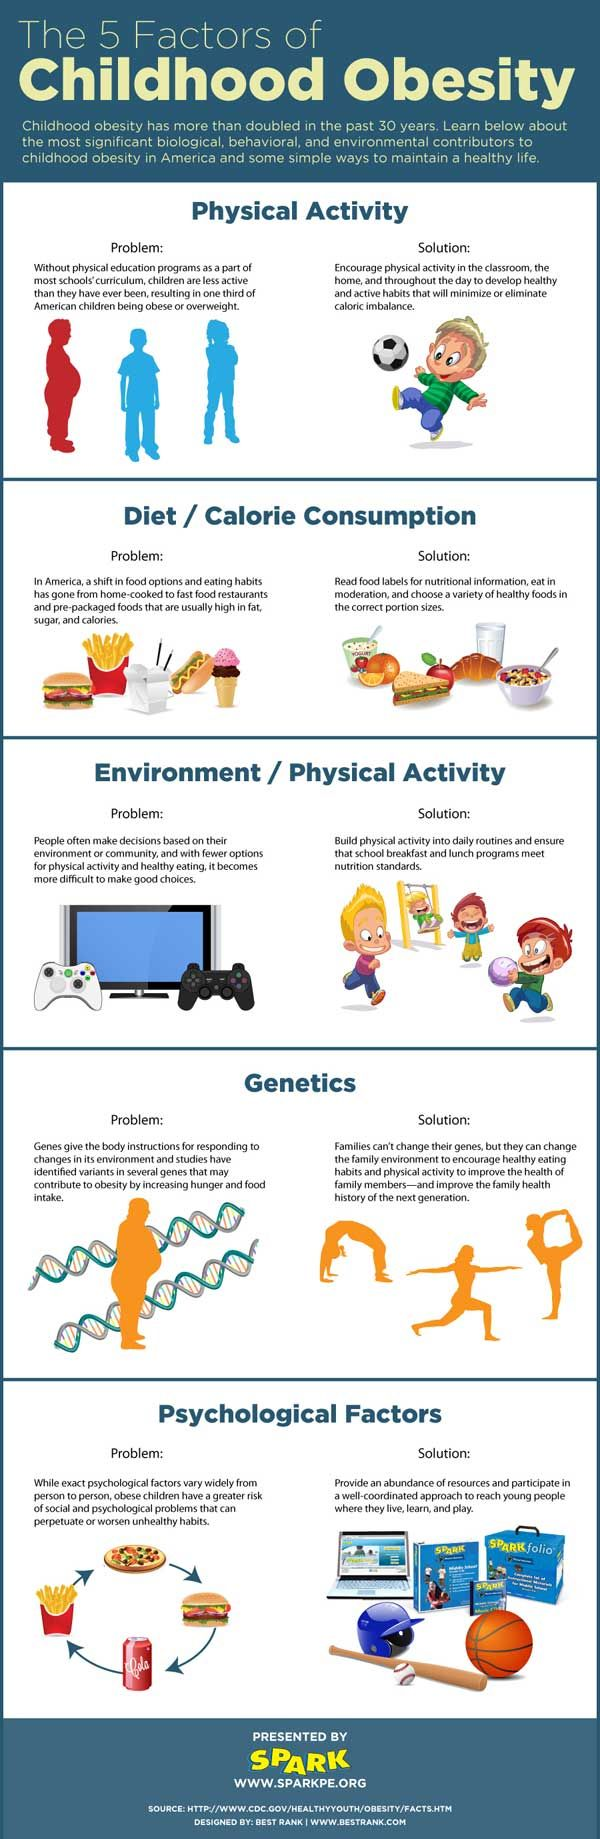 5 Factors of Childhood Obesity... via SPARK. http://www.sparkpe.org/blog/5-factors-of-childhood-obesity/